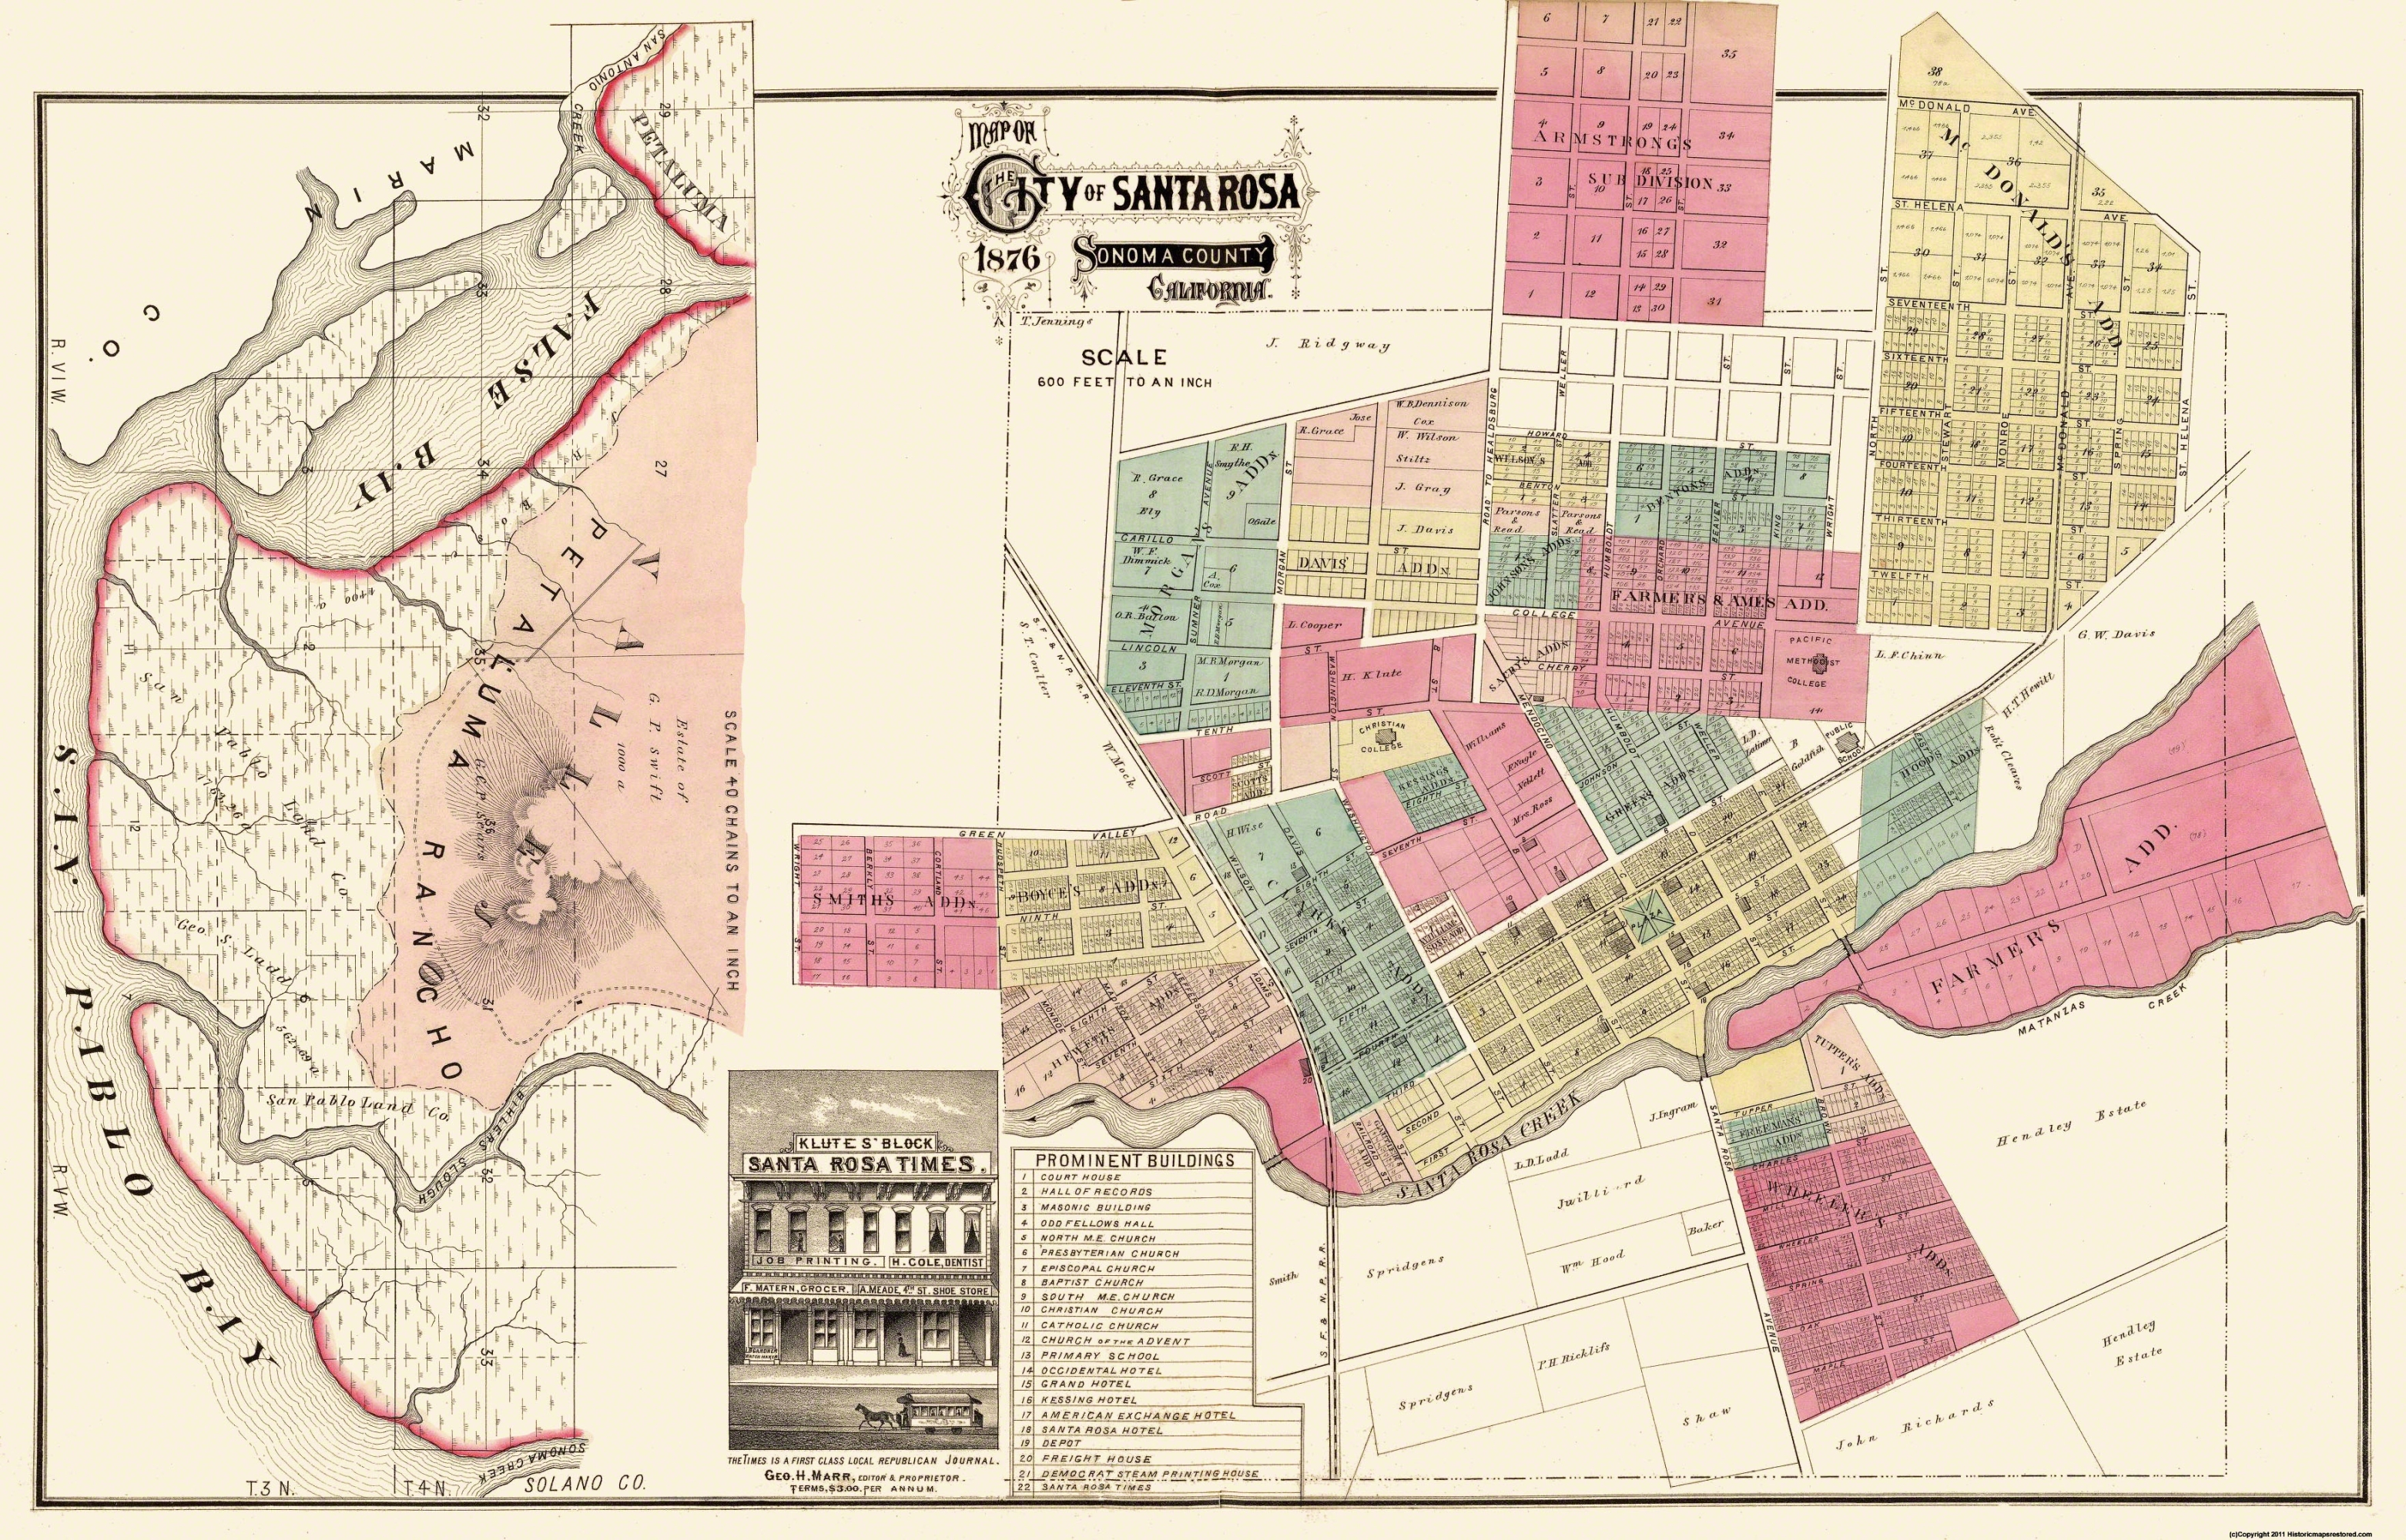 Santa Rosa California Map.Santa Rosa California Plan Marr 1876 35 94 X 23